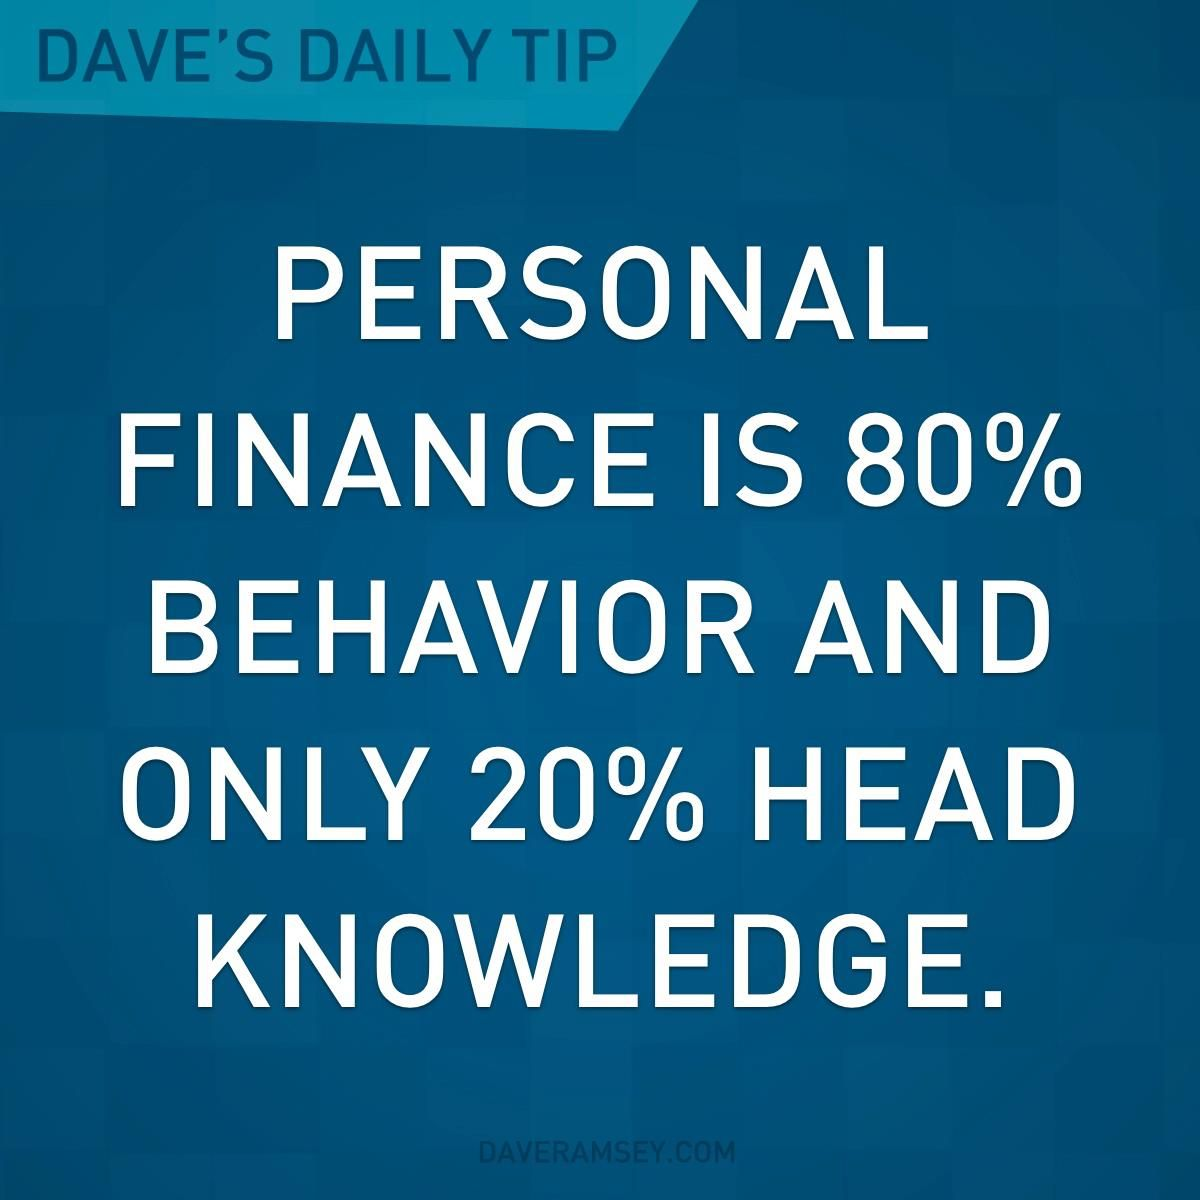 Dave Ramsey Take Control Of Your Life And Money Financial Quotes Finance Quotes Investment Quotes